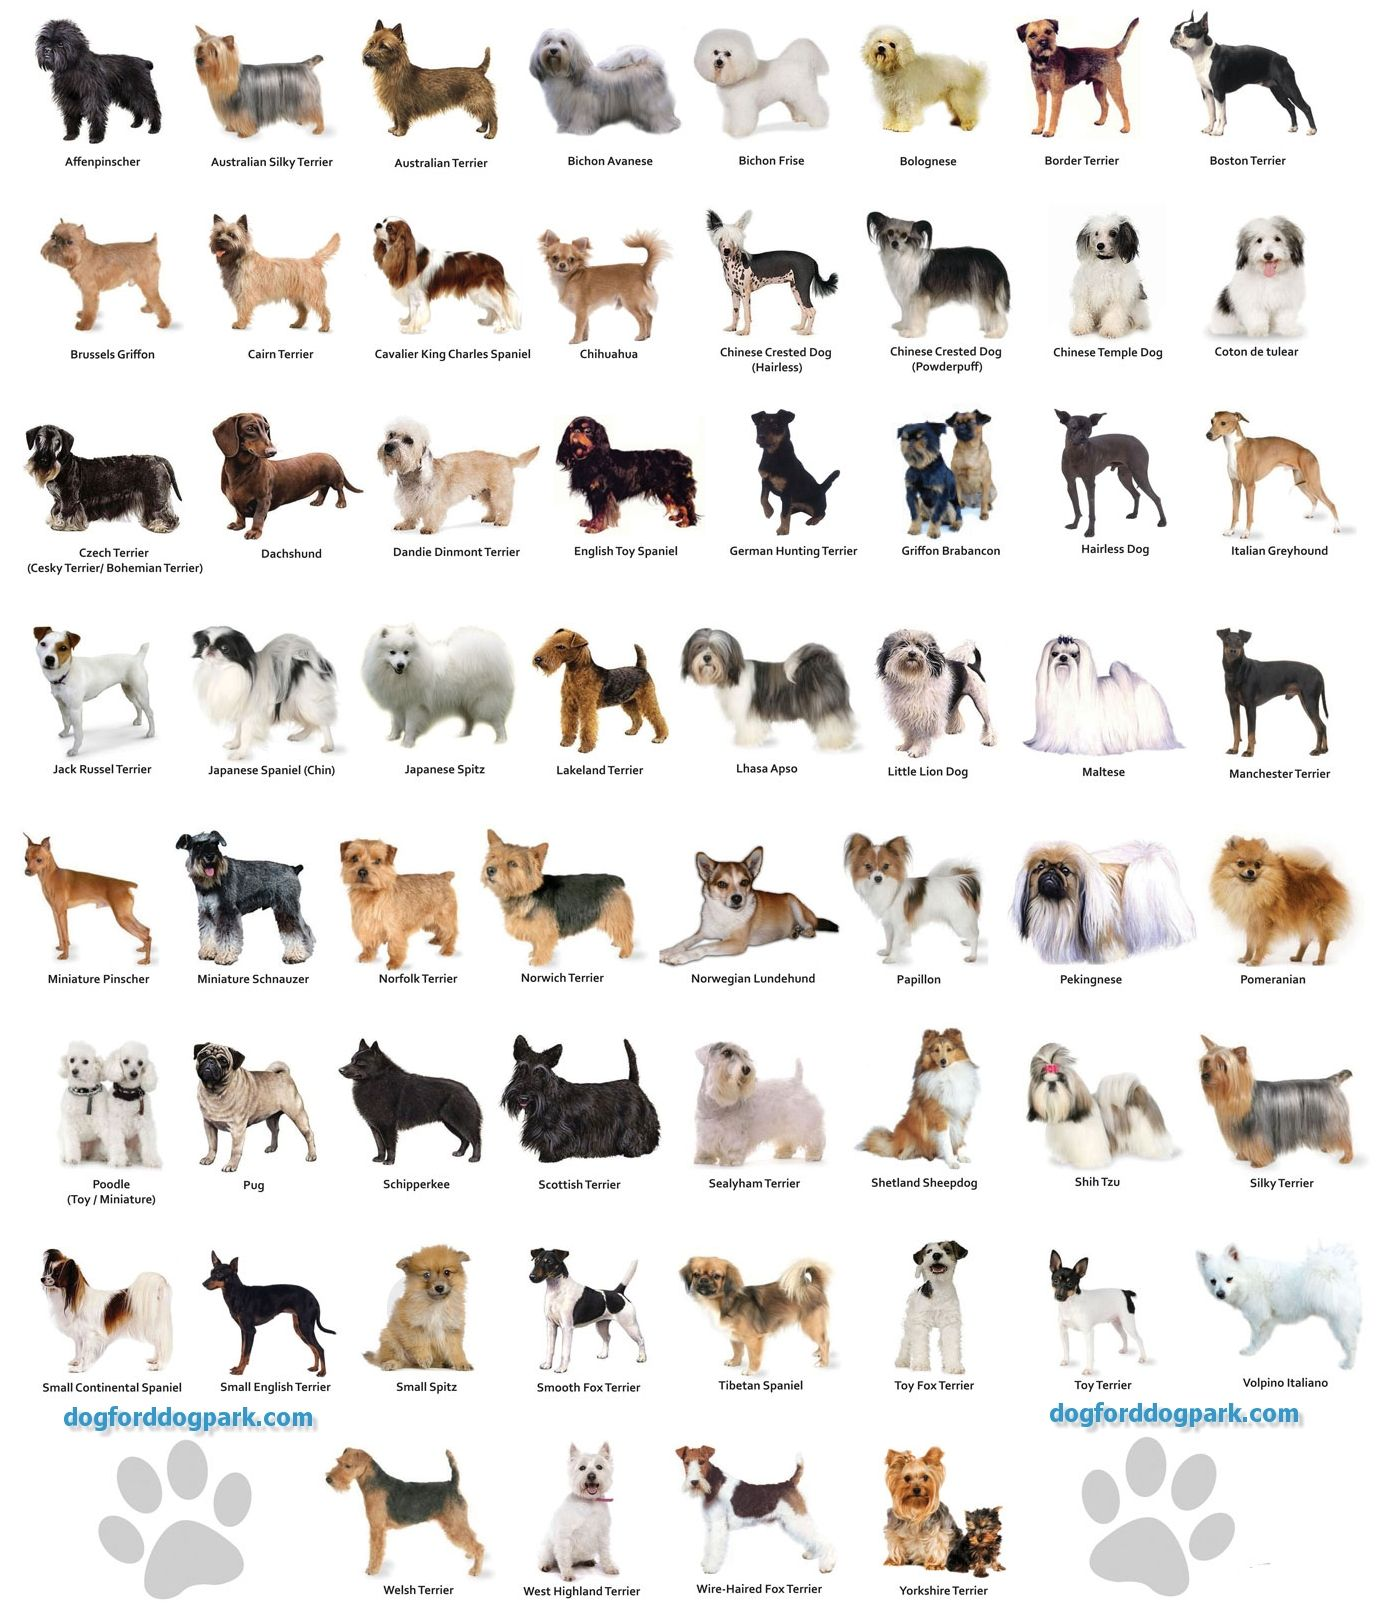 Small dog breeds | Furry friends | Pinterest | Charts, Dog tumblr ...